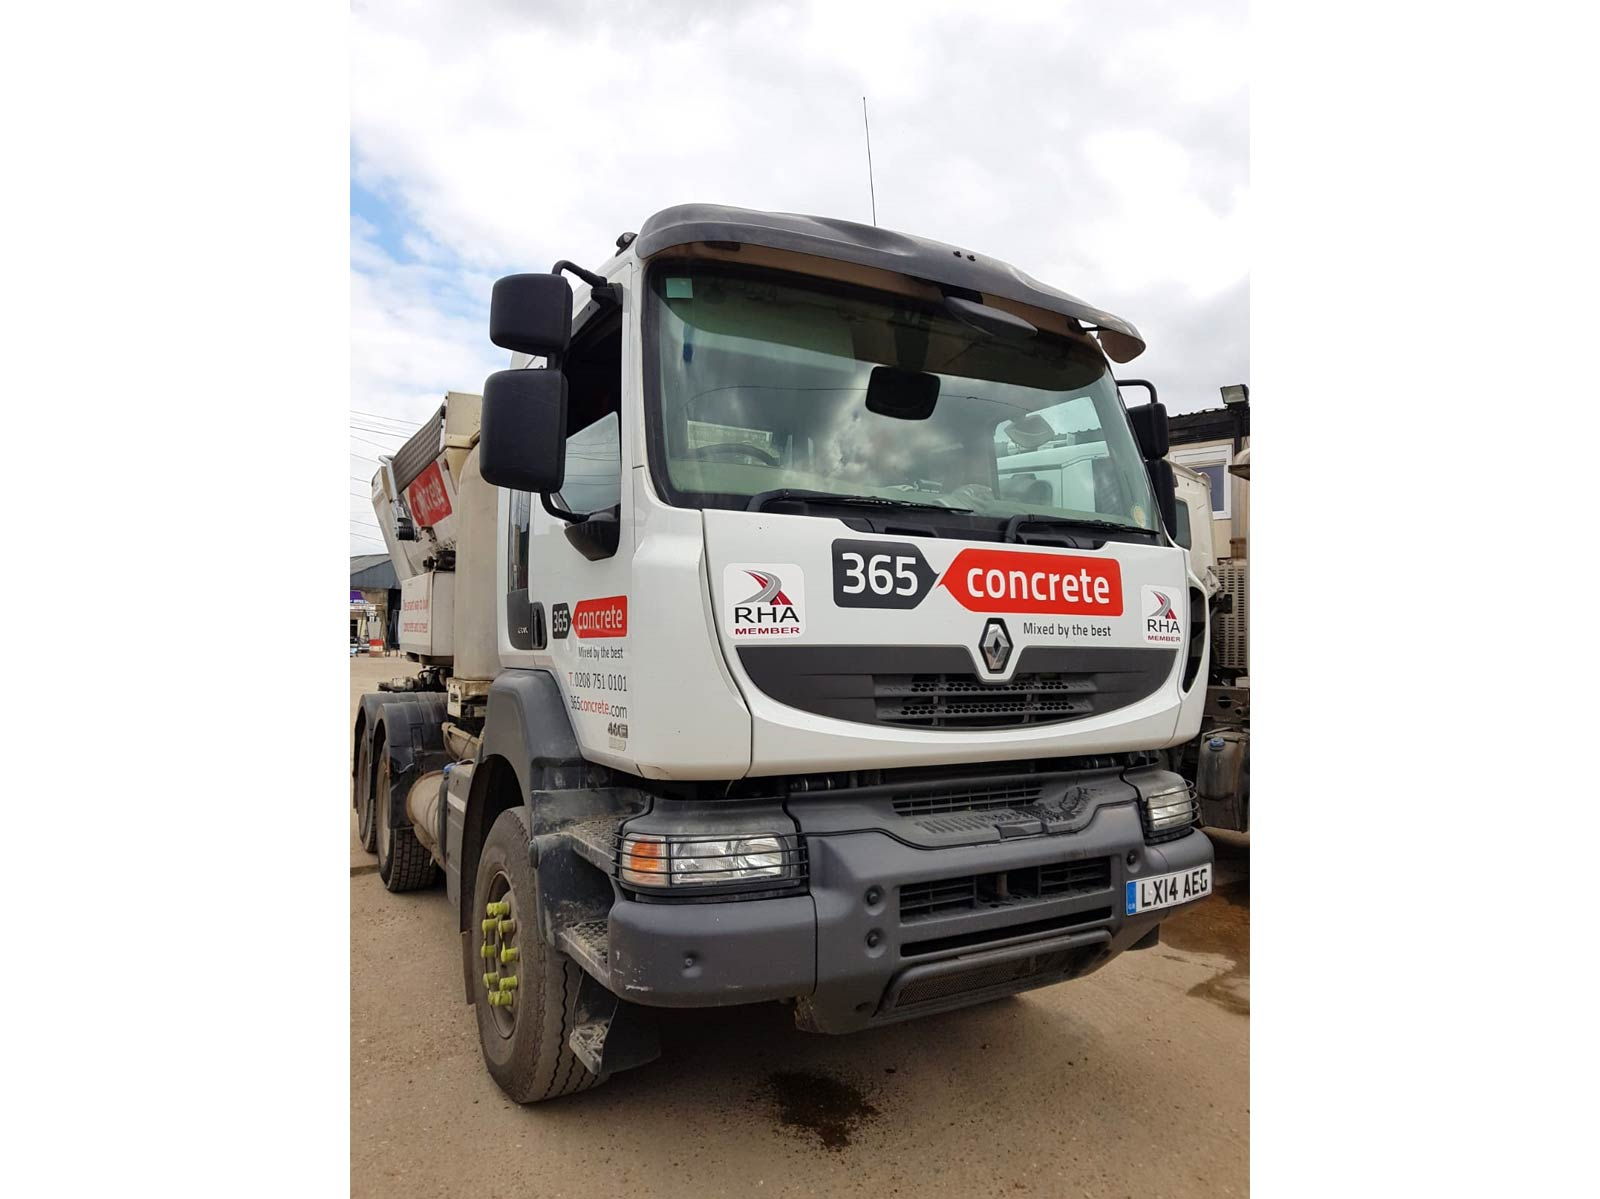 Used 2014 Renault Kerax cab with Reimer RA 500 Volumetric Mixer for sale